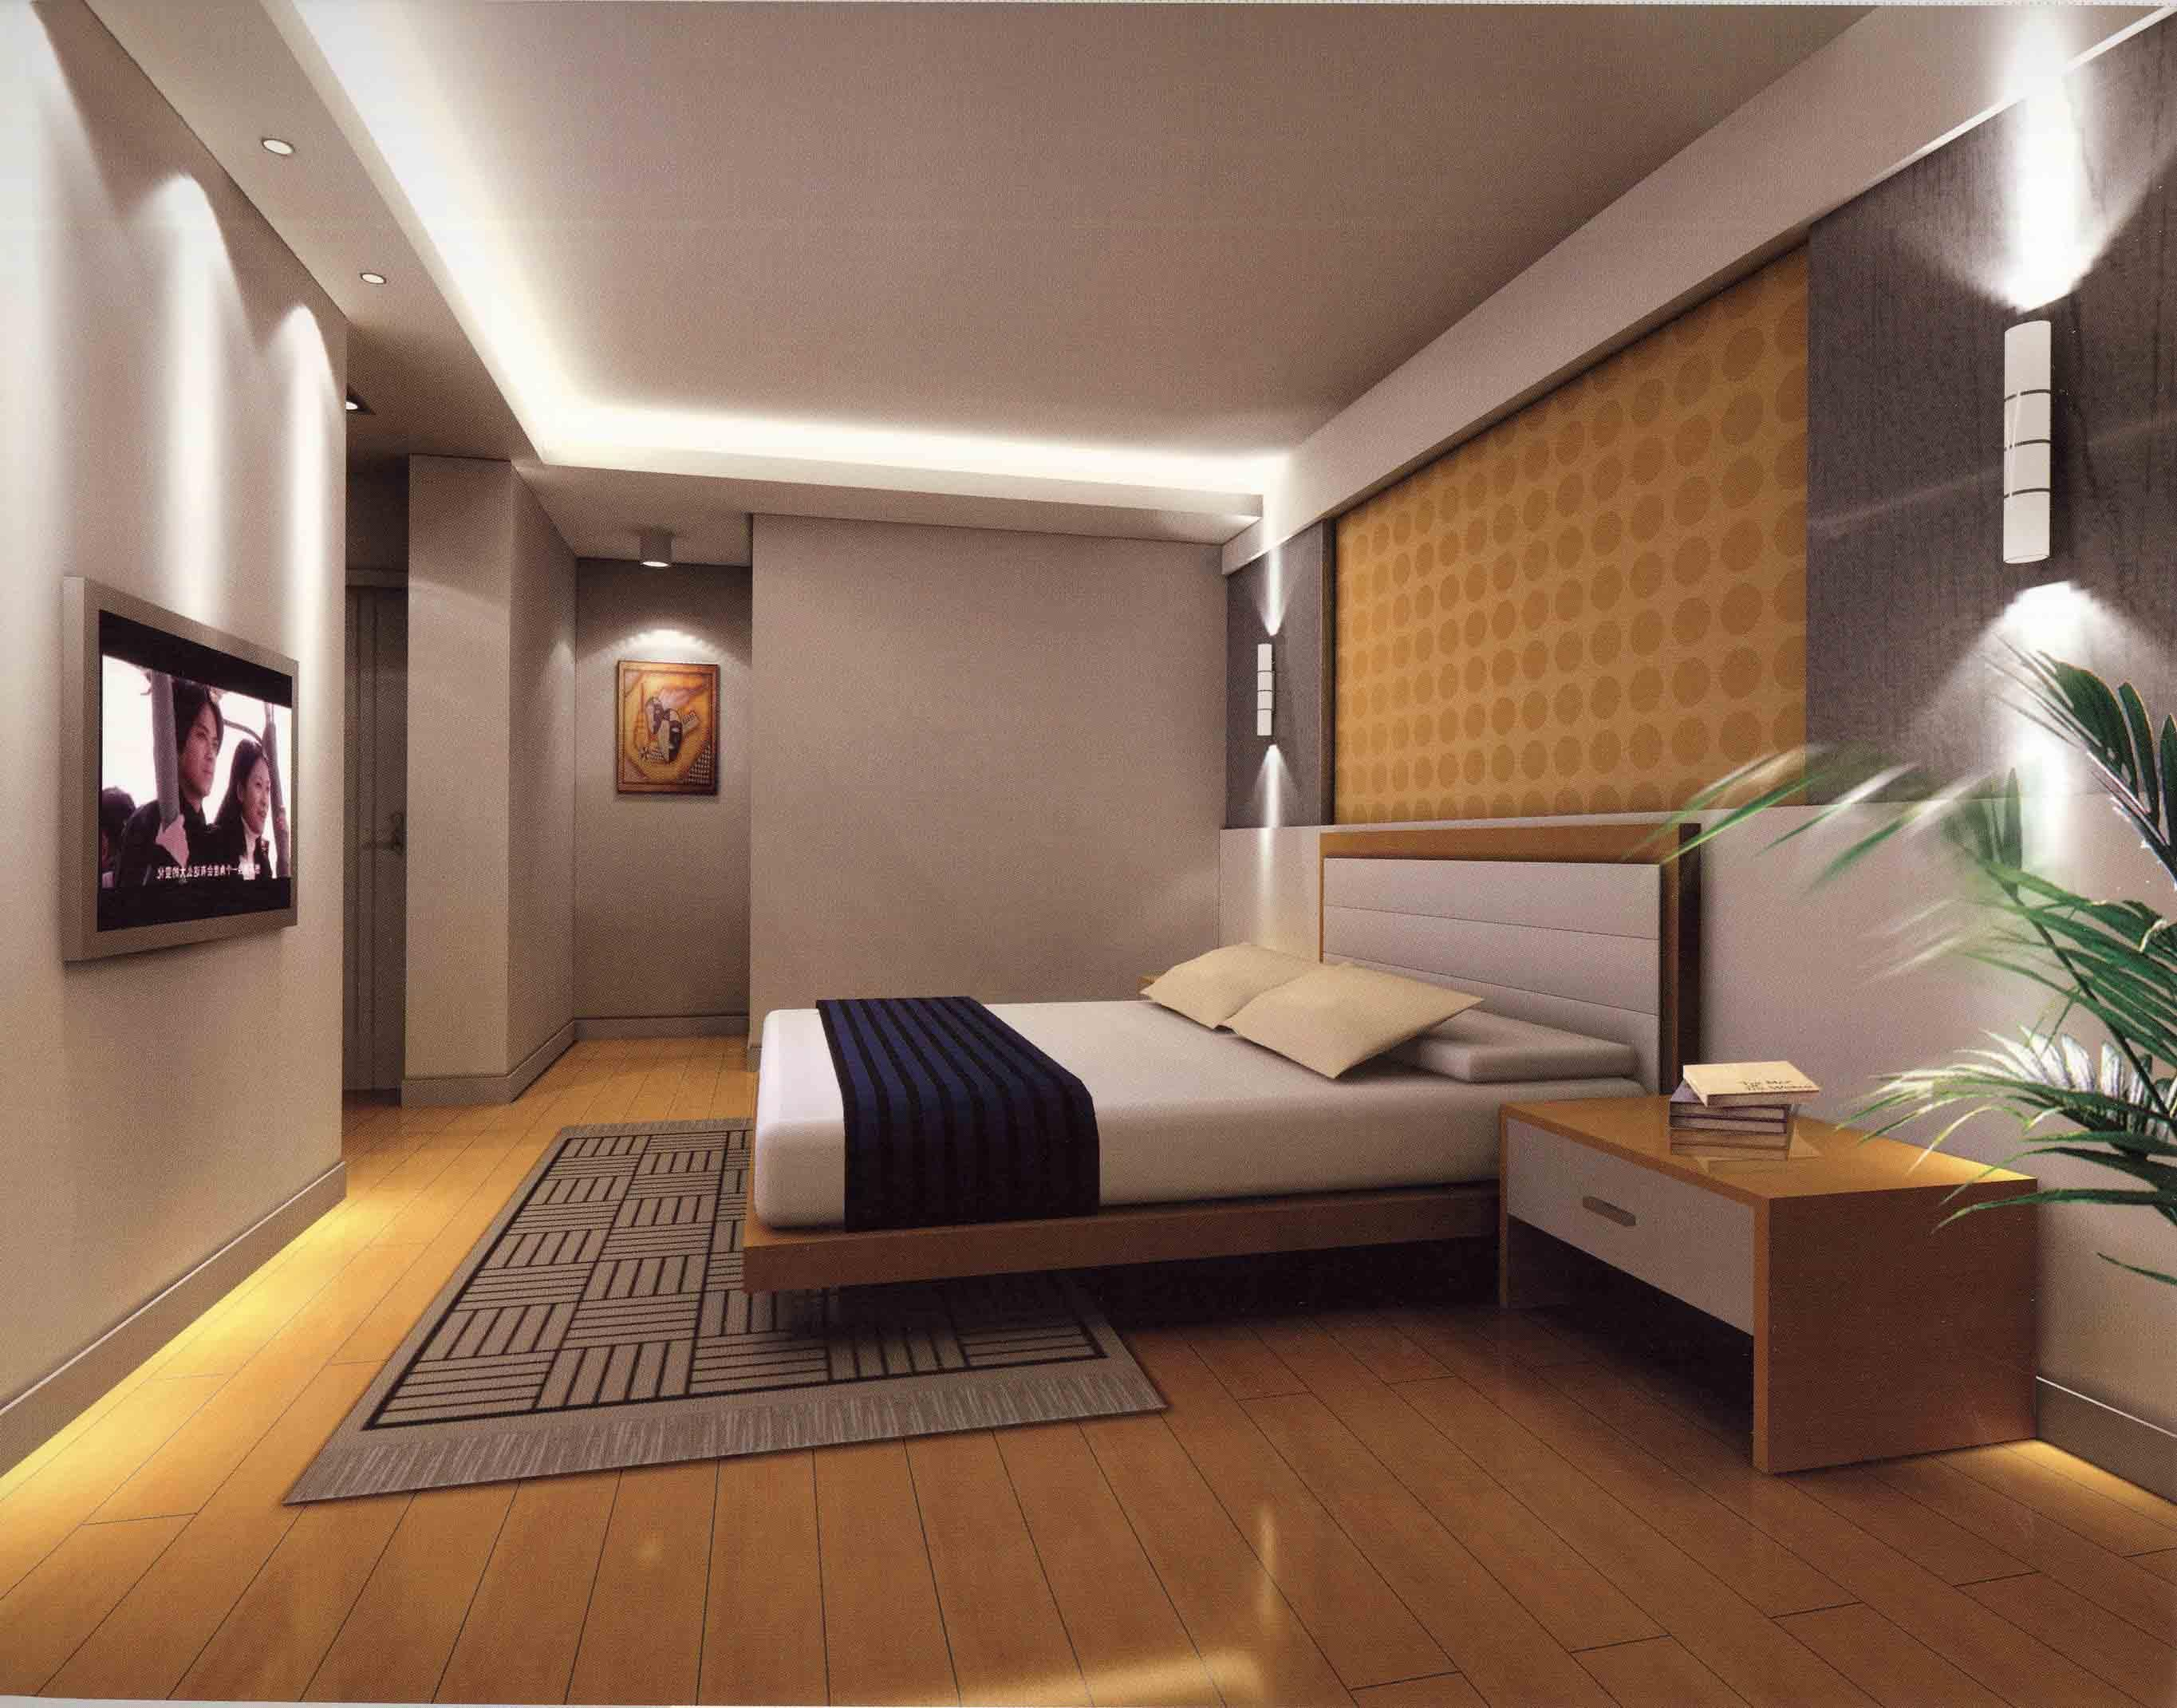 Master Bedroom Design Ideas 21 contemporary and modern master bedroom designs 2 31 Magnificent Master Bedroom Design Ideas